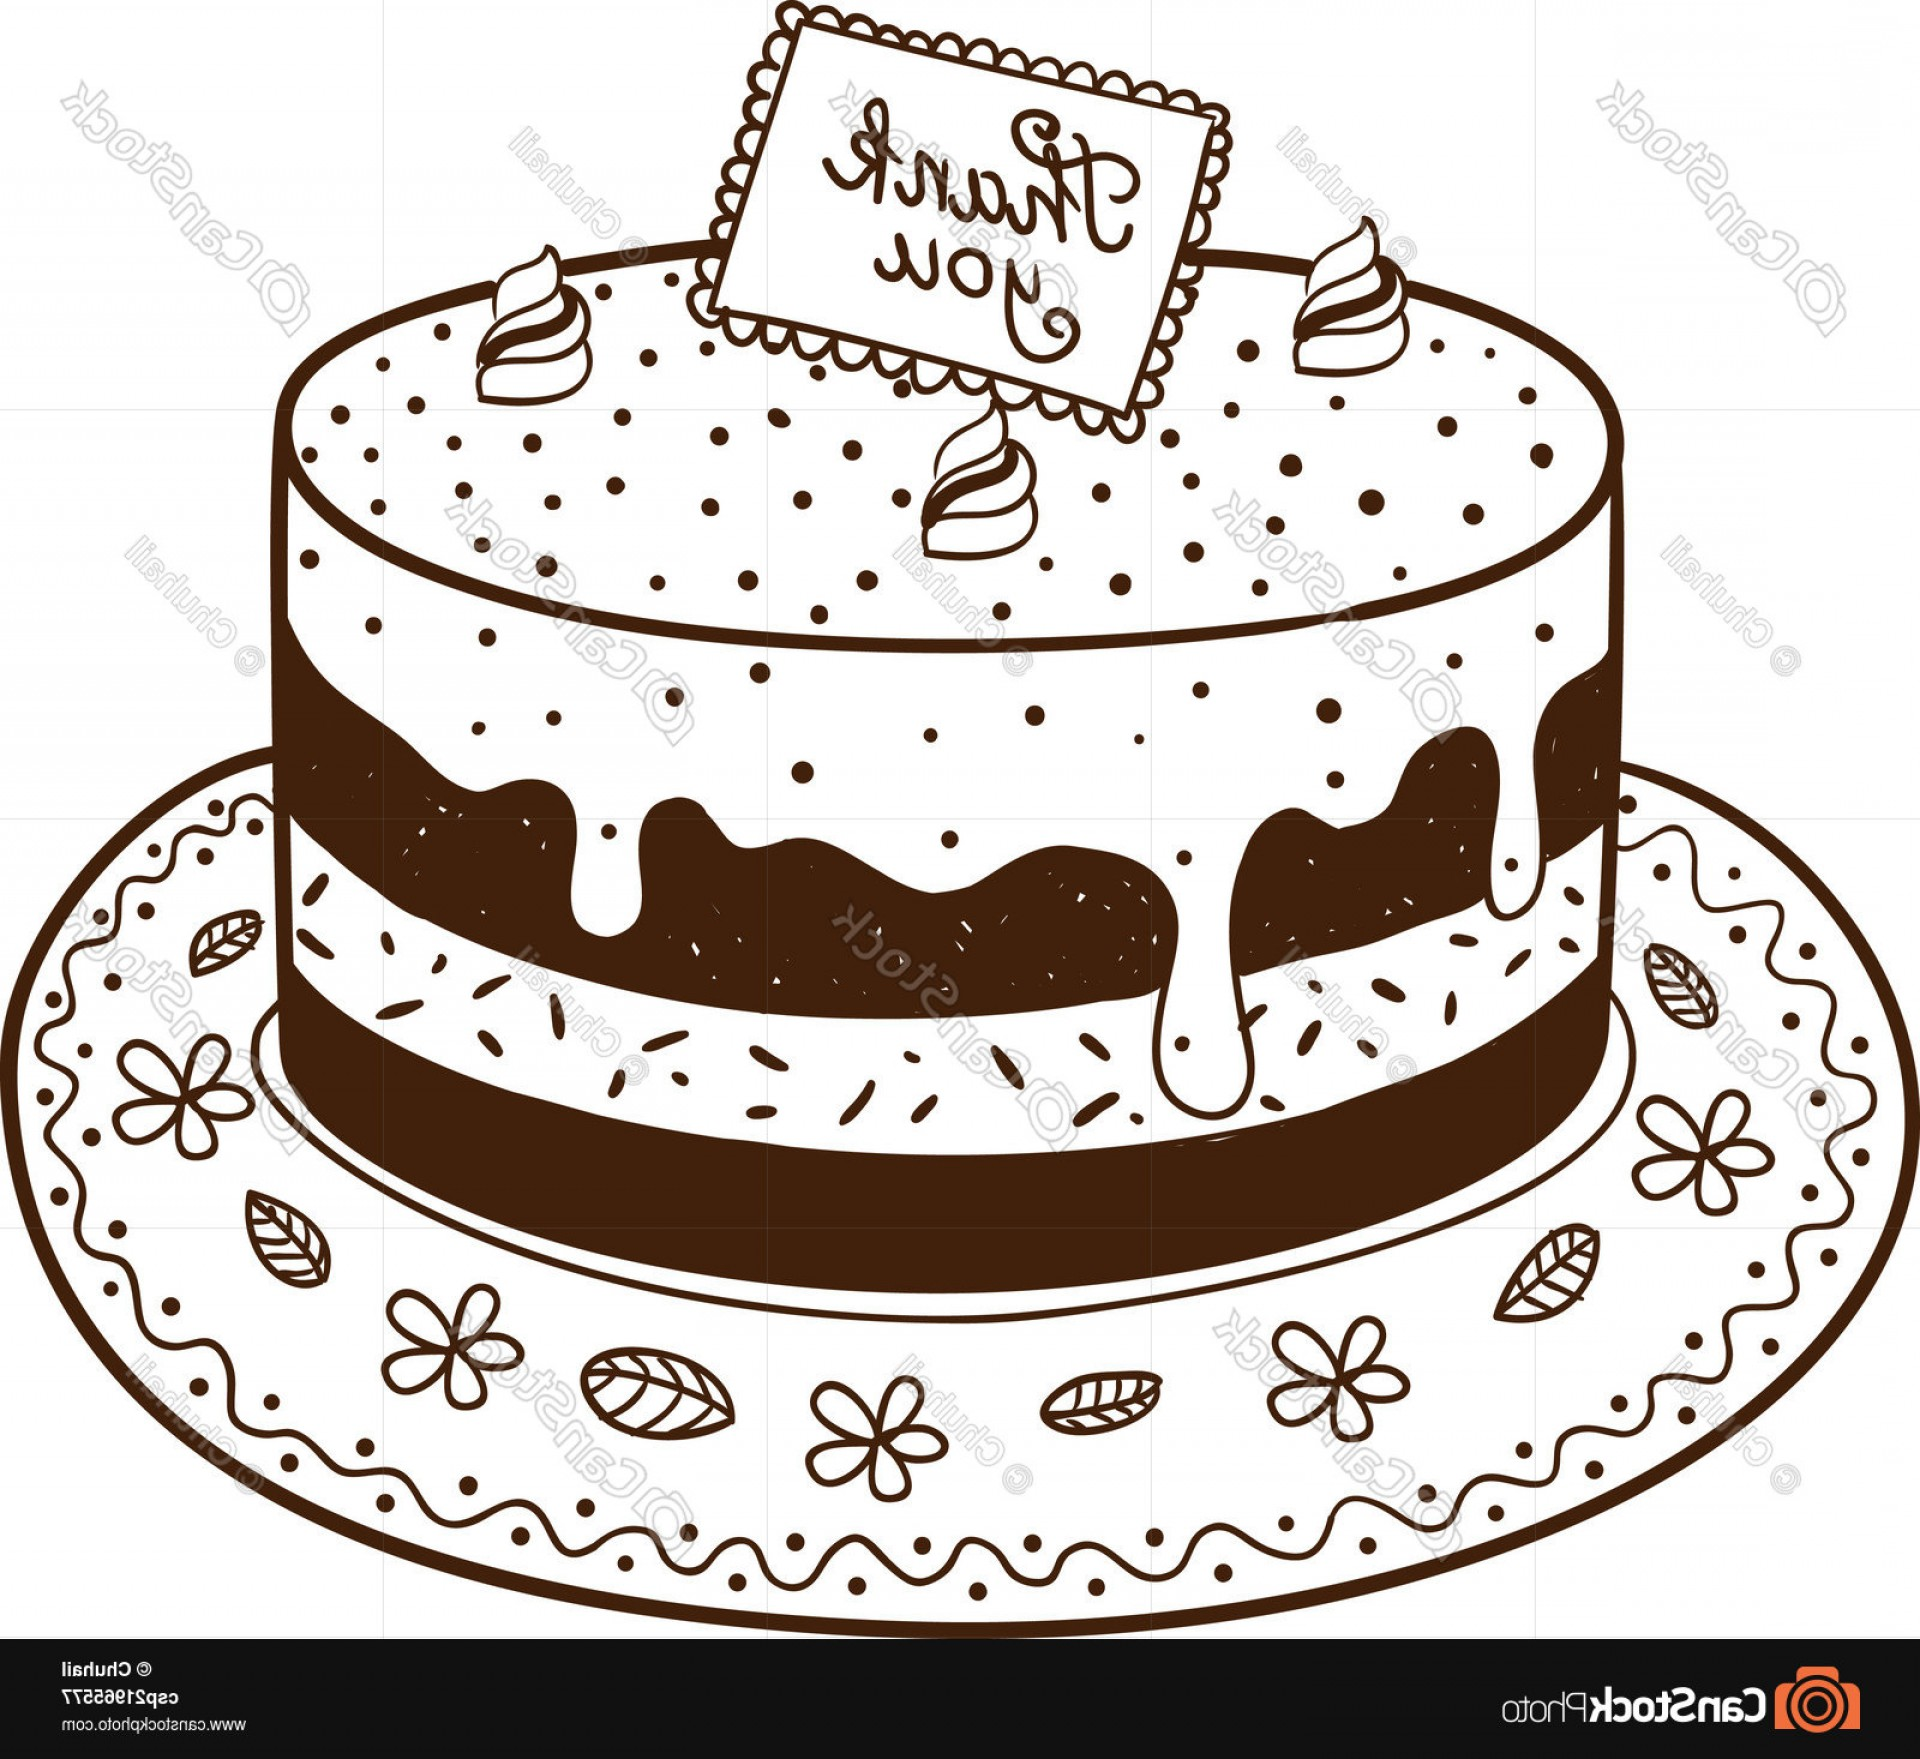 Nameplate Vector Graphics: Tasty Cake Pie With Thanksgiving